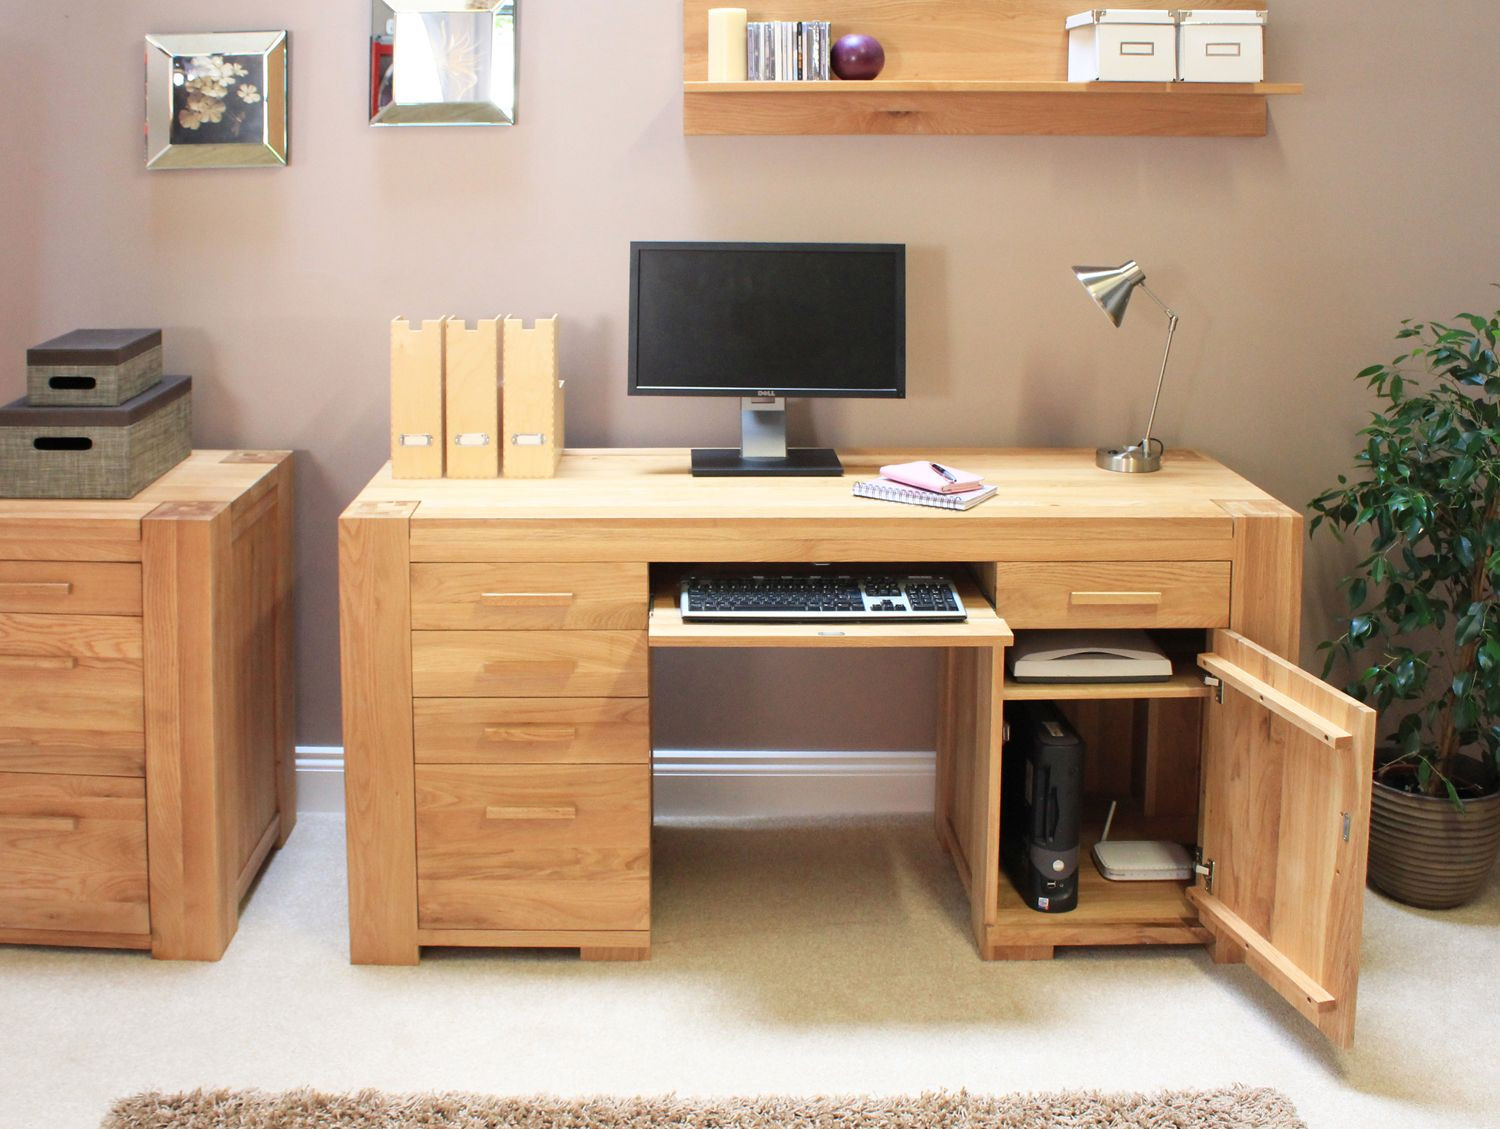 Best ideas about Office Desks For Home . Save or Pin Cool Home Interior Design Ideas Awesome Pine Desks for Now.